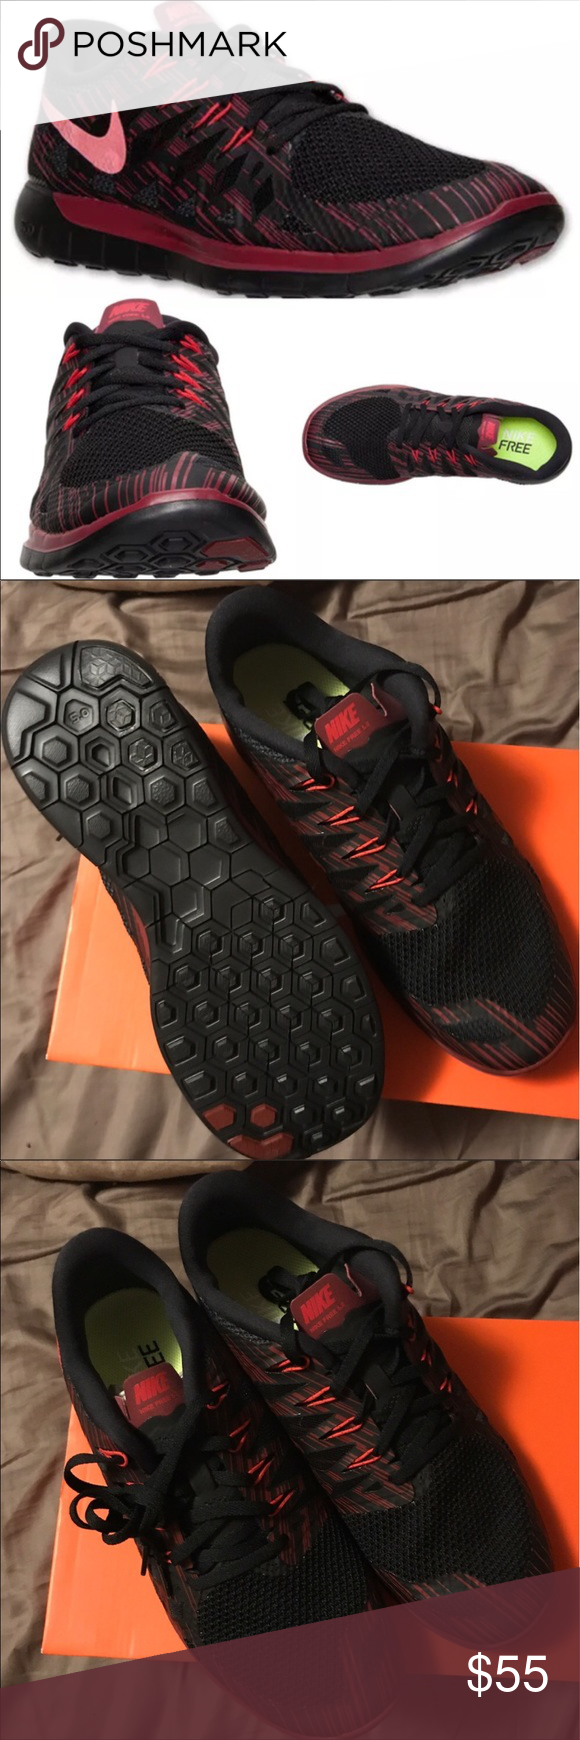 Men's Nike 5.0 Premium Running Shoes Brand new 5.0 Nike Premium is the trainer which is perfect for outdoor activities. Leather upper ensures durability and synthetic outsole provides efficient traction on rough surfaces. Nike Shoes